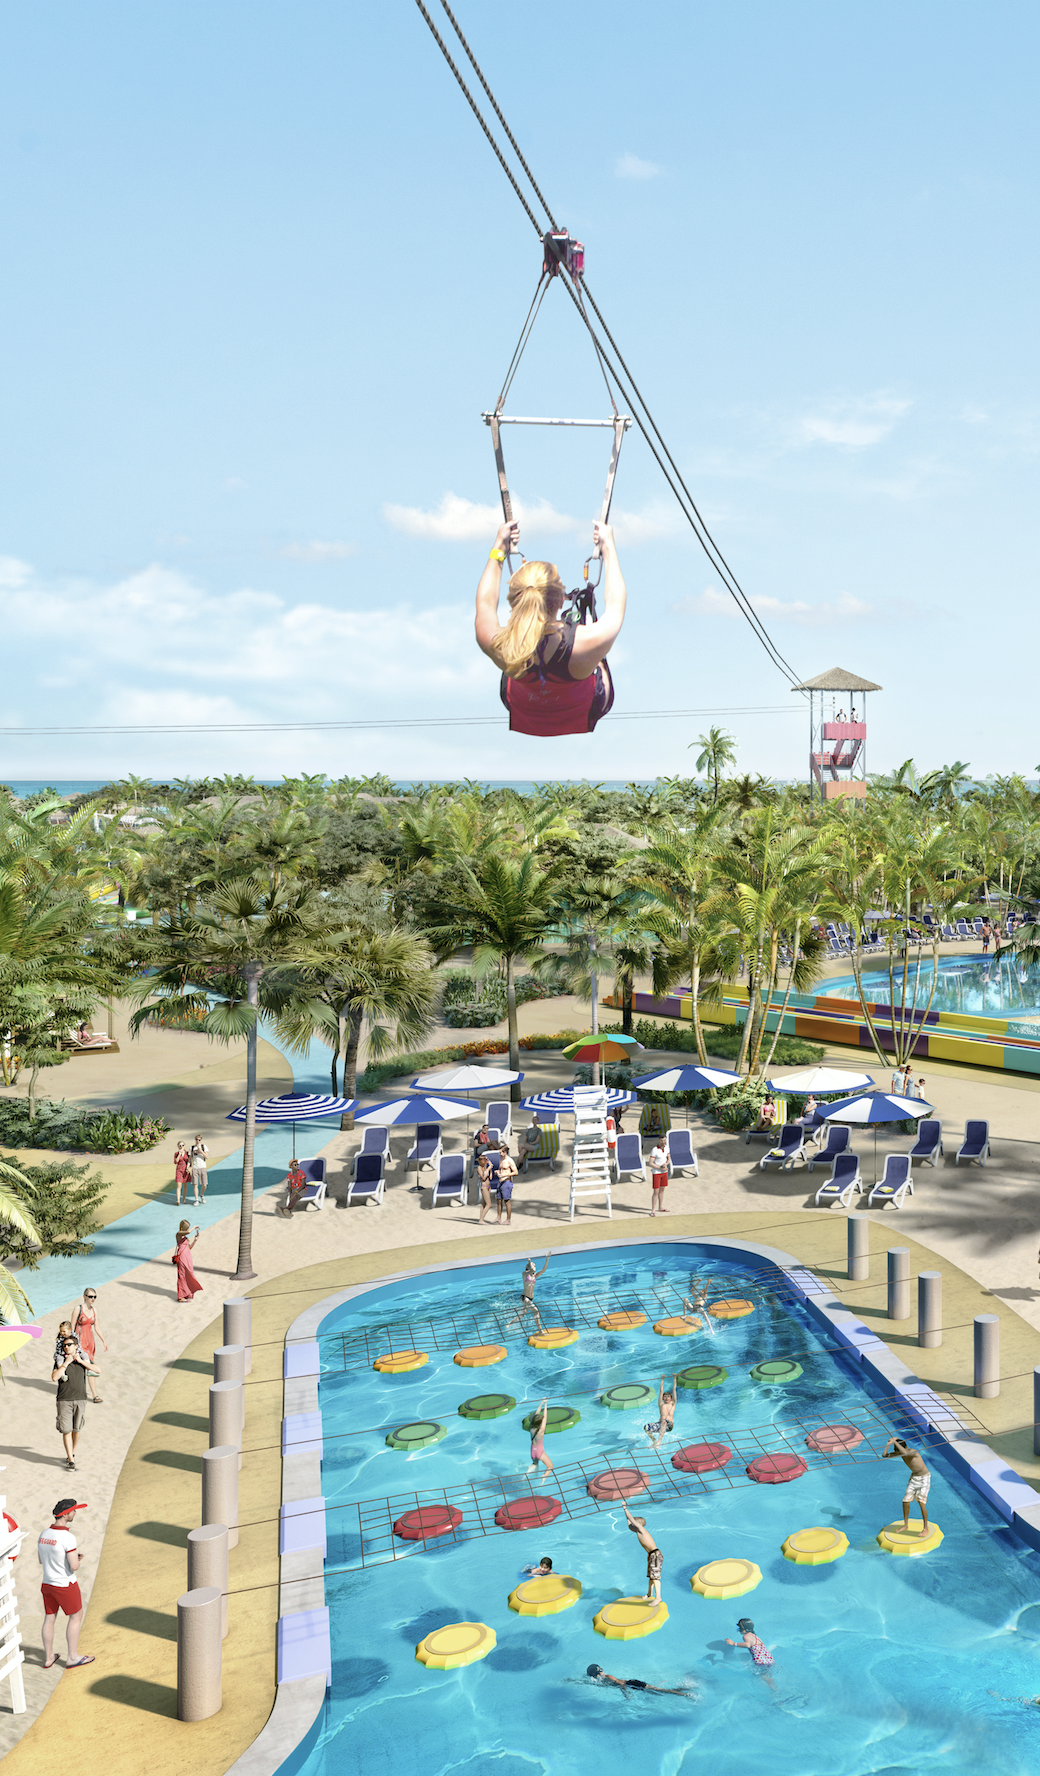 cococay bahamas 1 600 feet of zip line ends with a splash landing